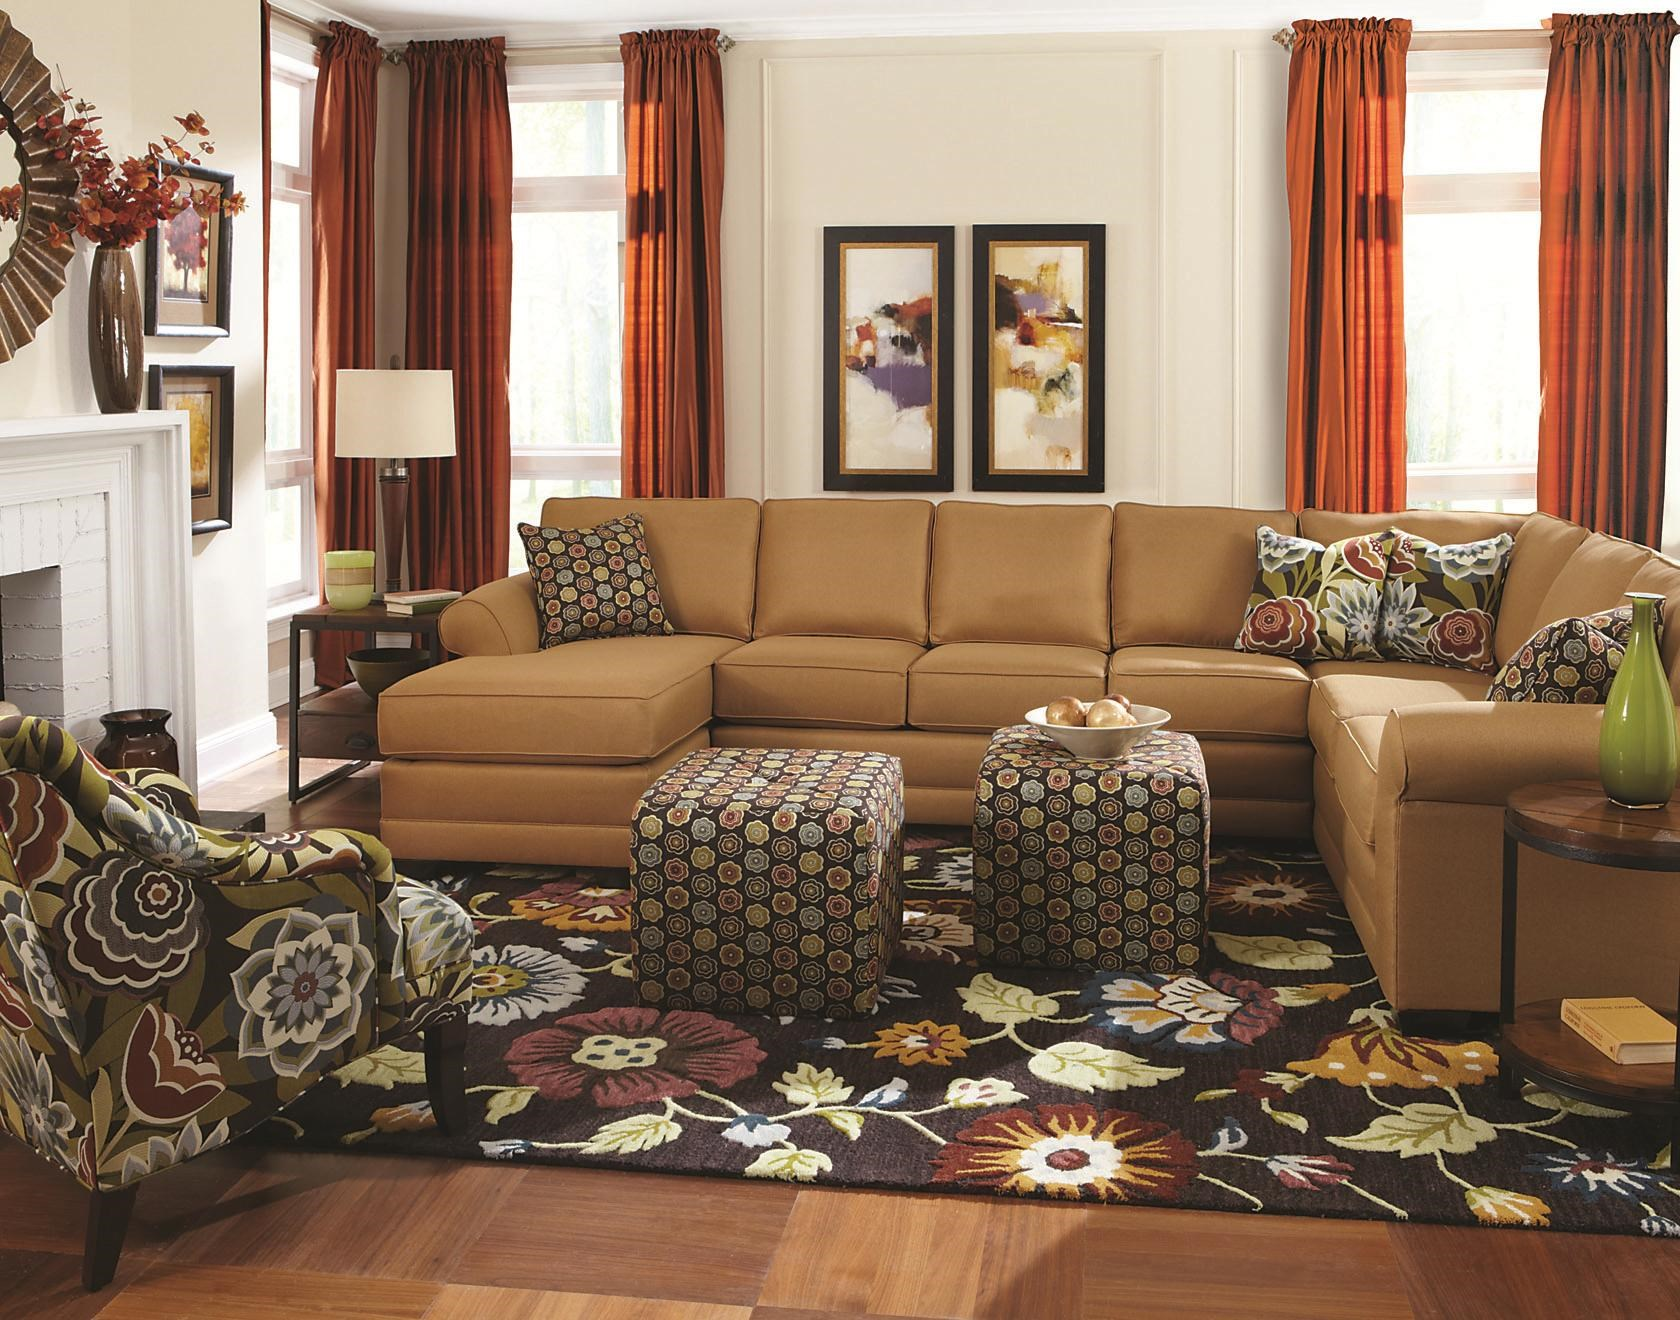 England Brantley 6 Seat Sectional with Chaise  sc 1 st  Colderu0027s : colders sectionals - Sectionals, Sofas & Couches